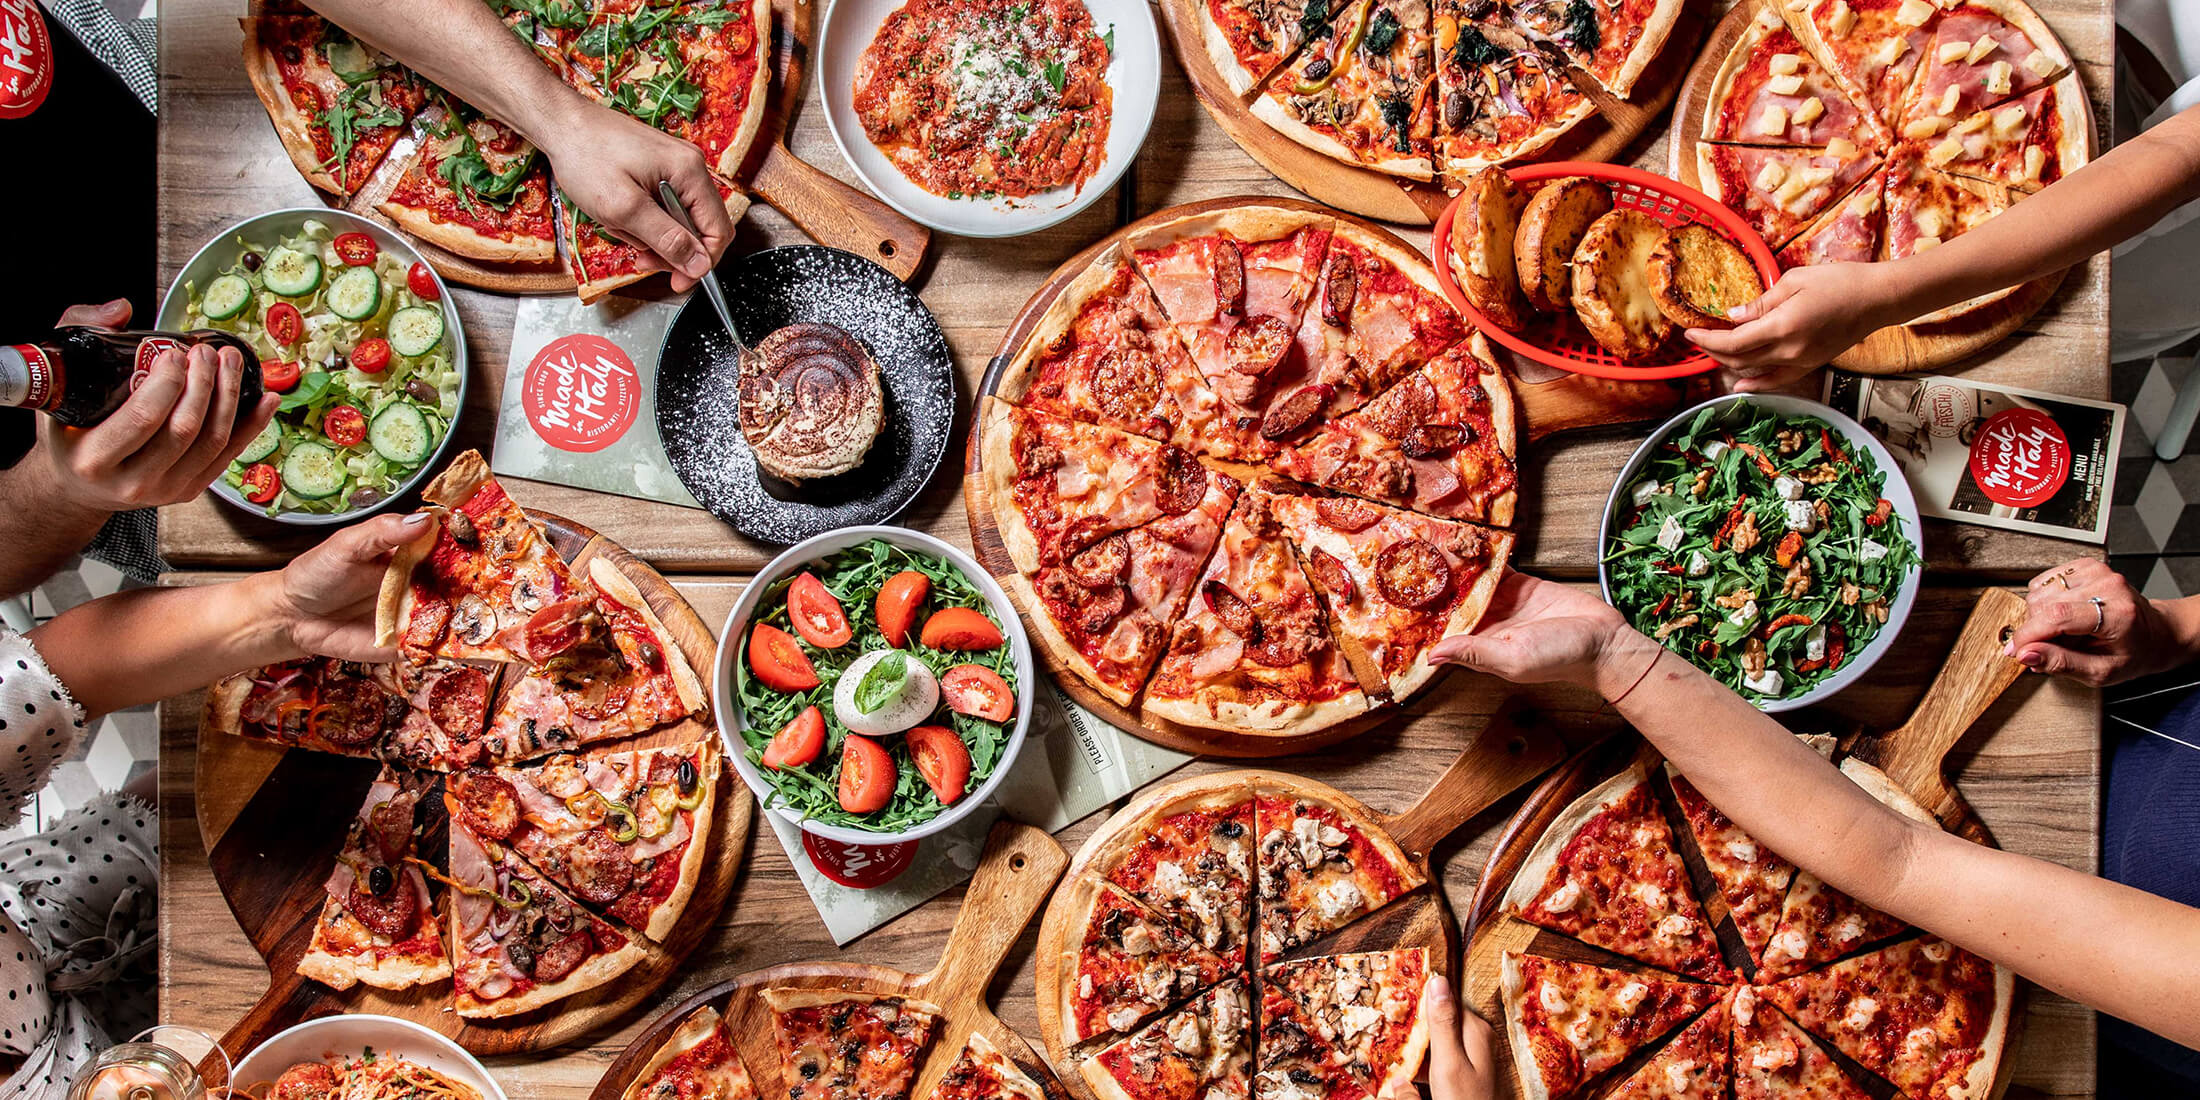 Made in Italy is an Italian restaurant in Five Dock serving pizza and pasta including take away.